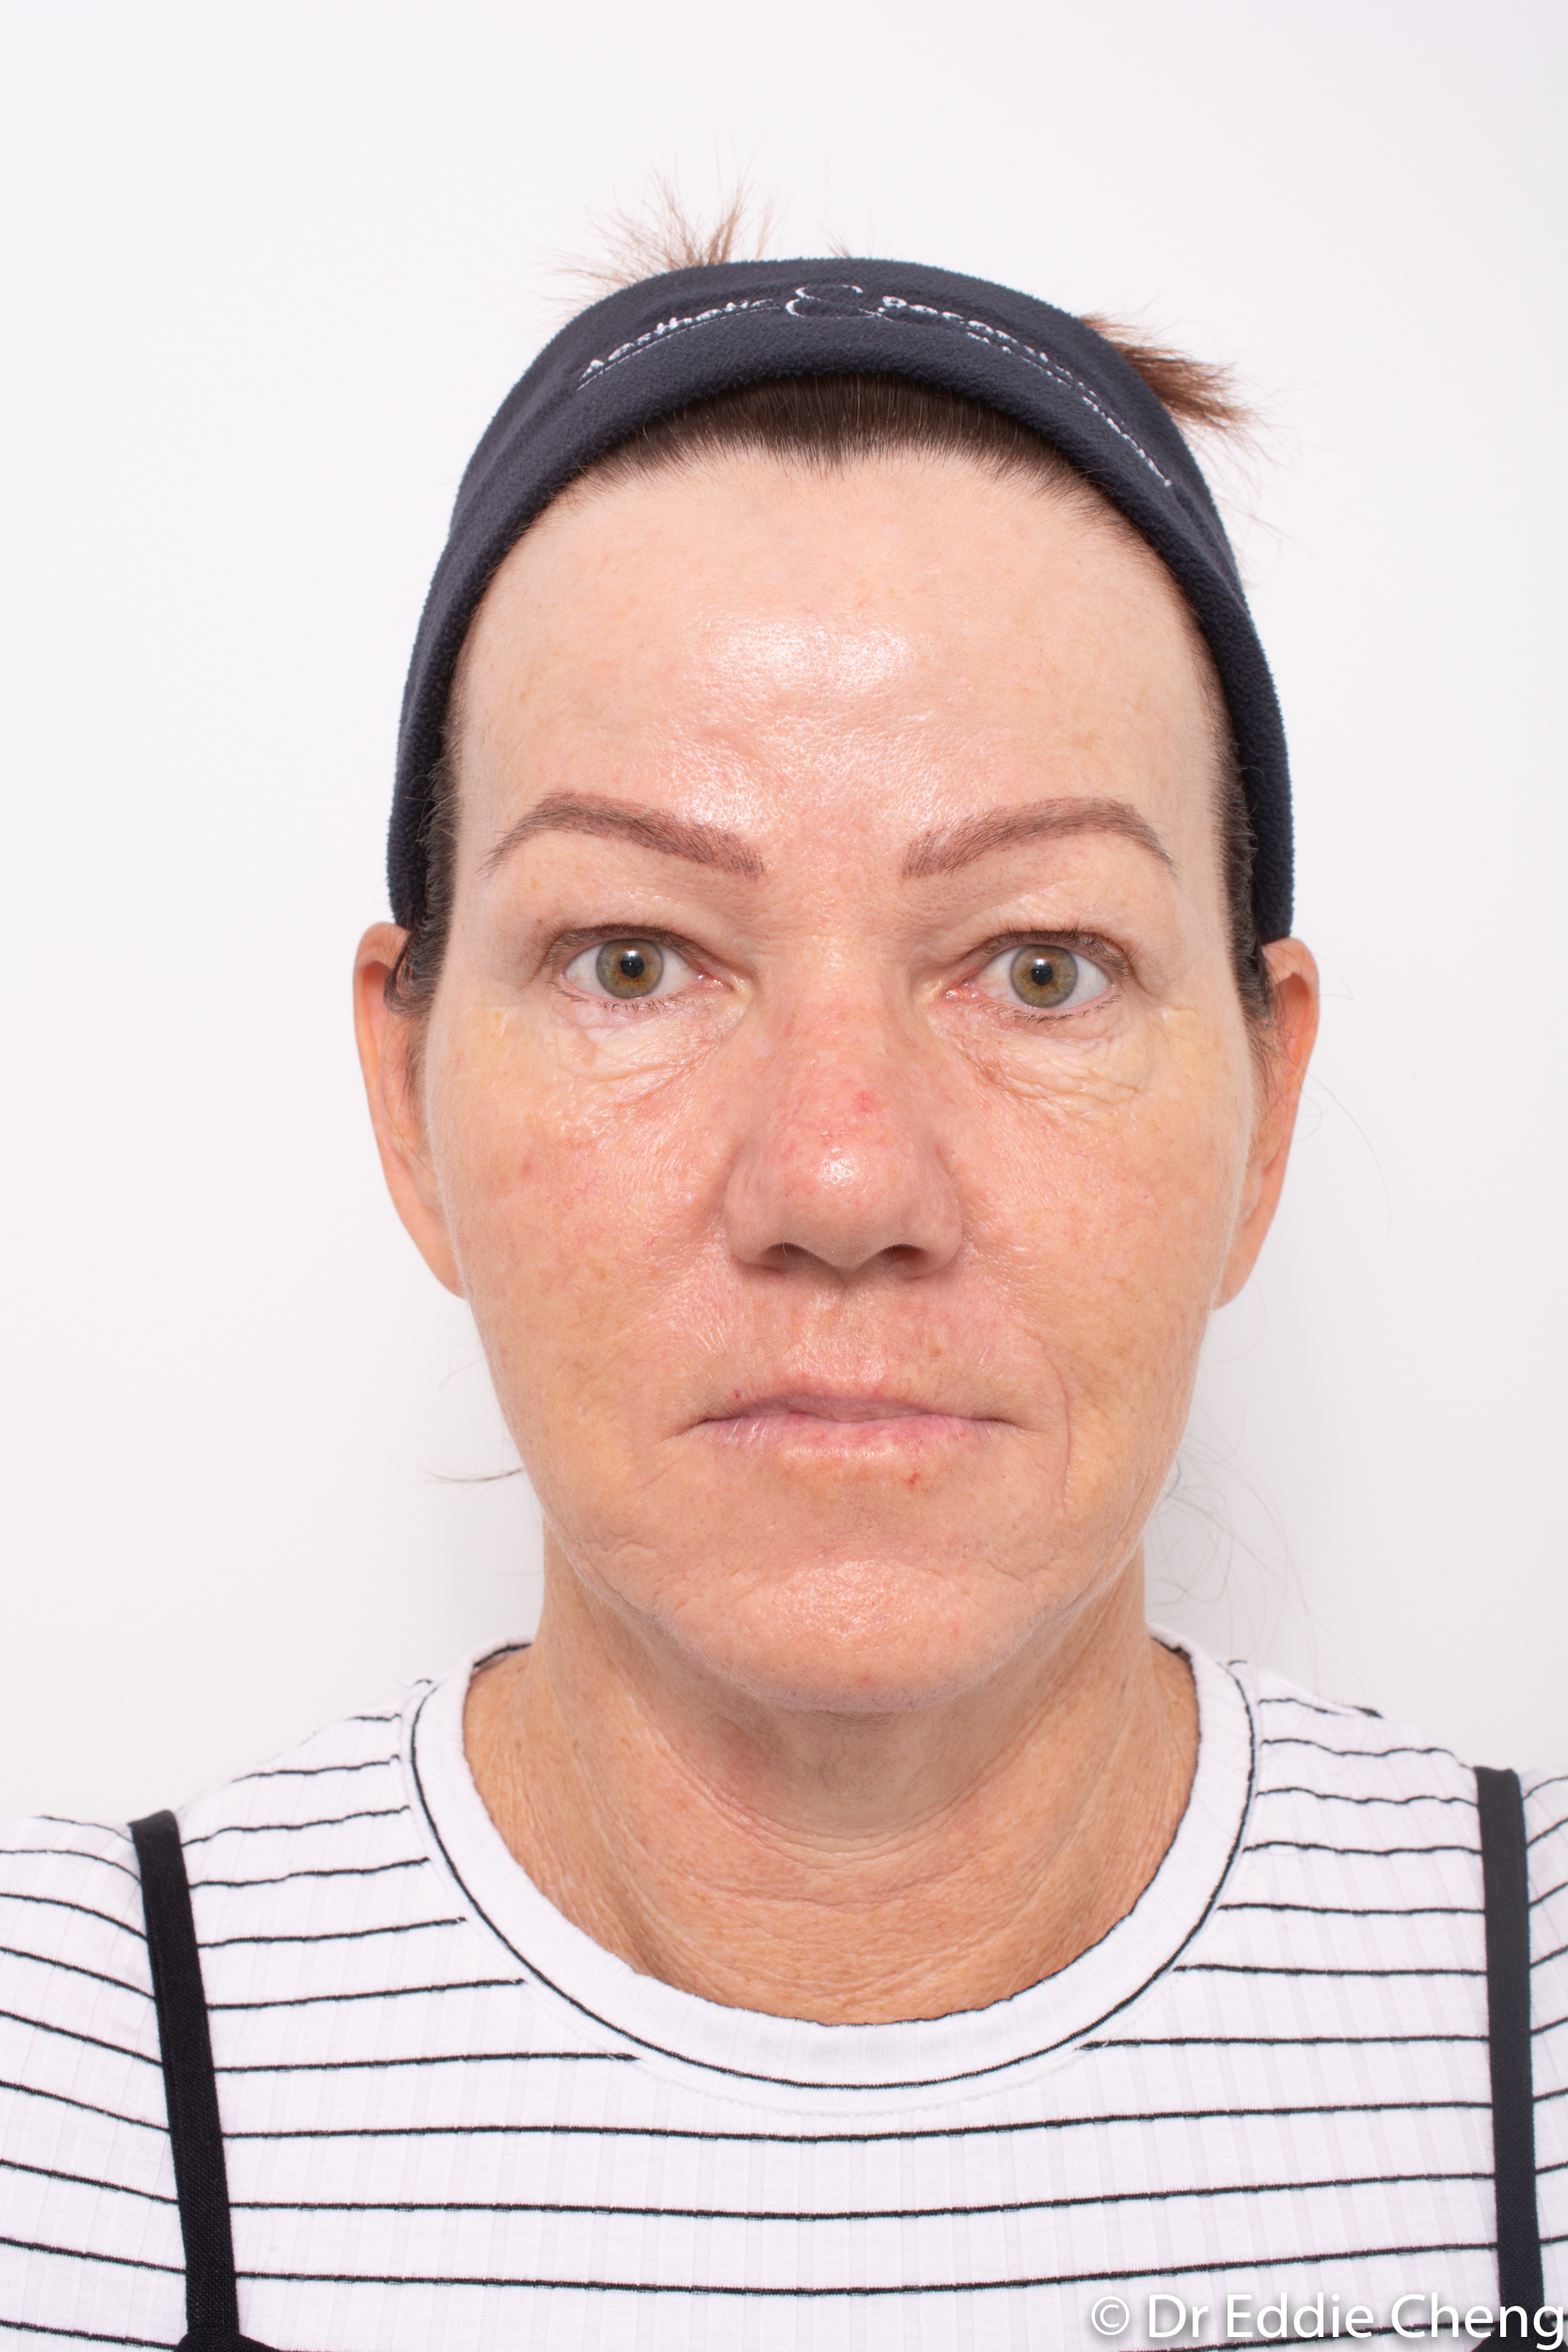 Brow lift dr eddie cheng blepharoplasty pre and post operative brisbane surgeon -3-2